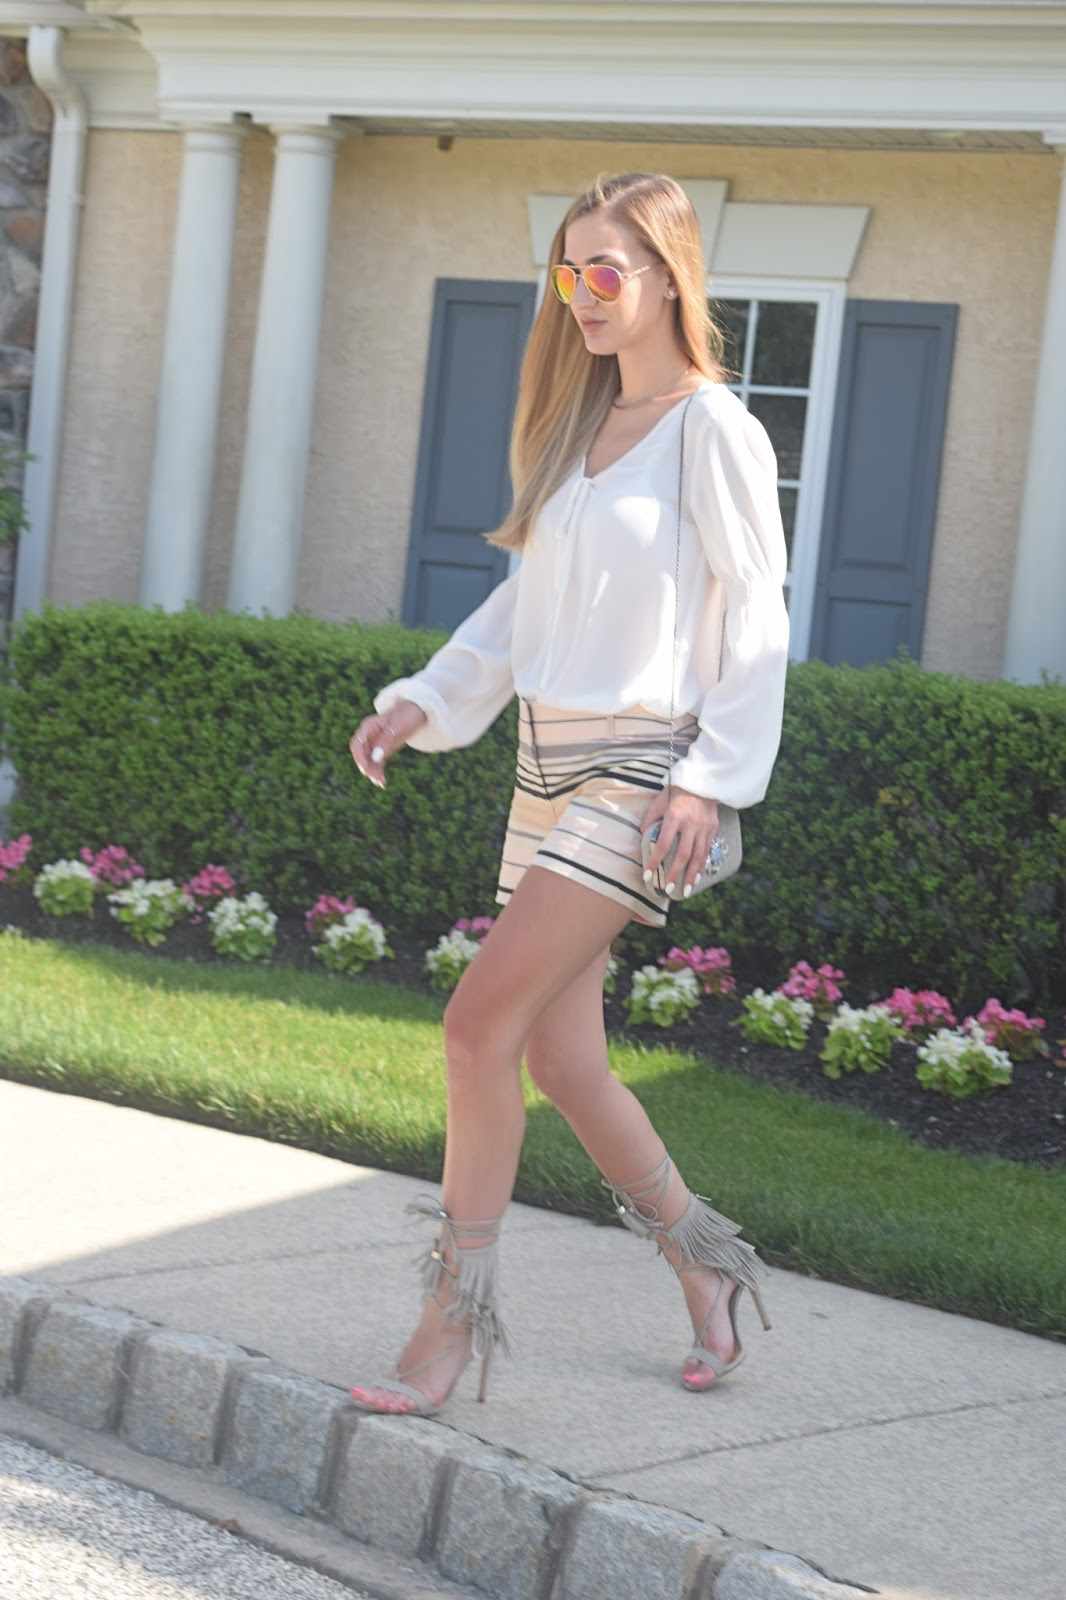 Loft striped shorts, summer shorts and fringe heels, shultz shoes fringe heels look